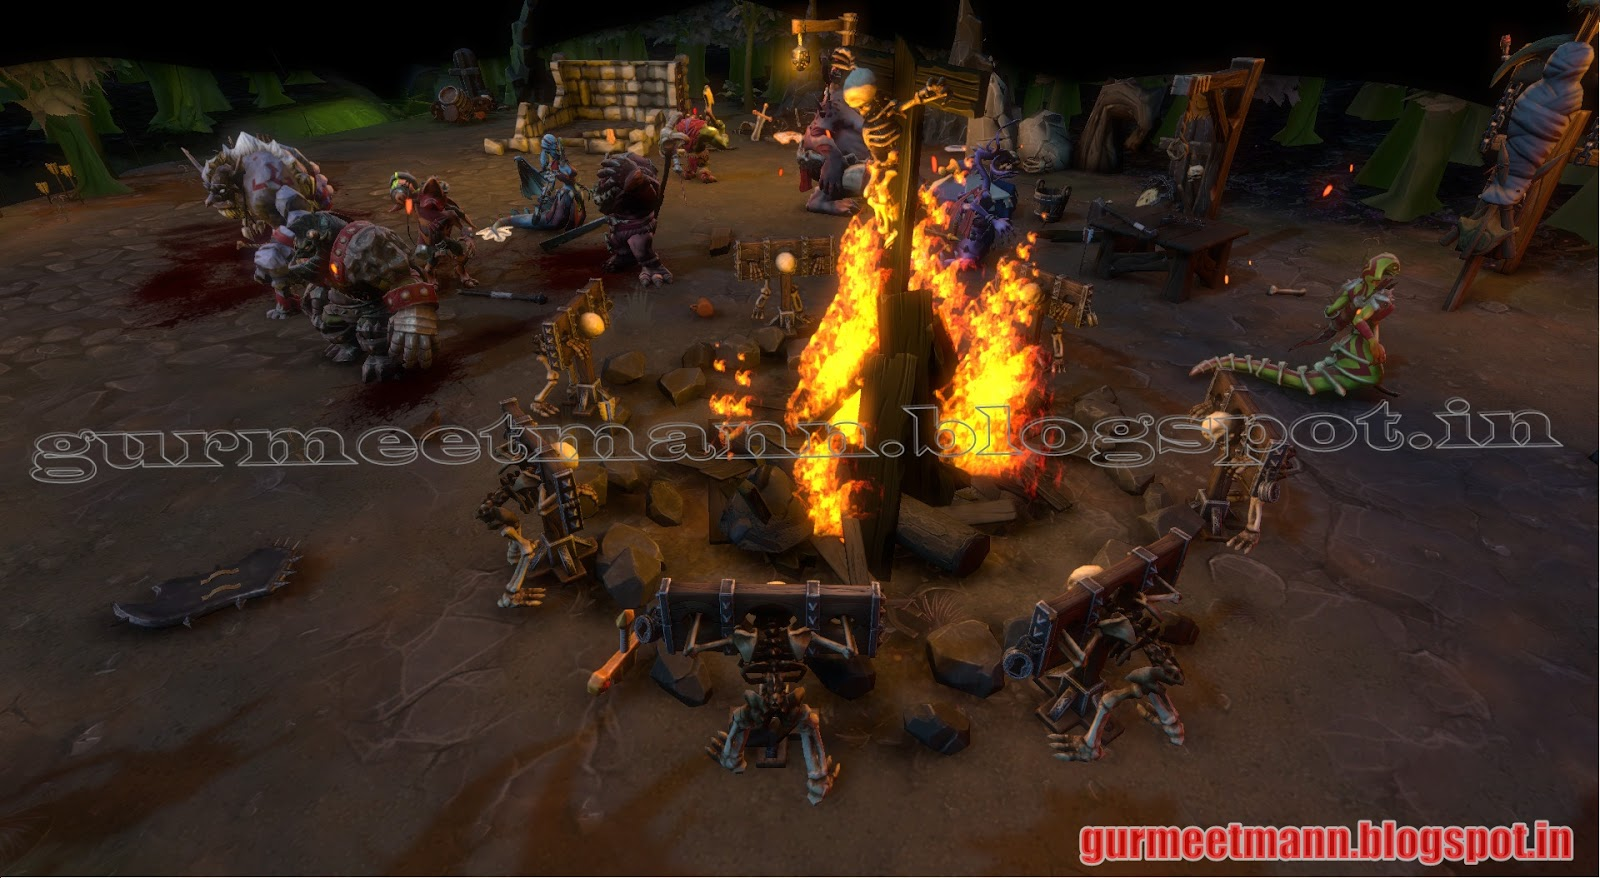 dungeons ii a song of sand (and,furthermore) fire